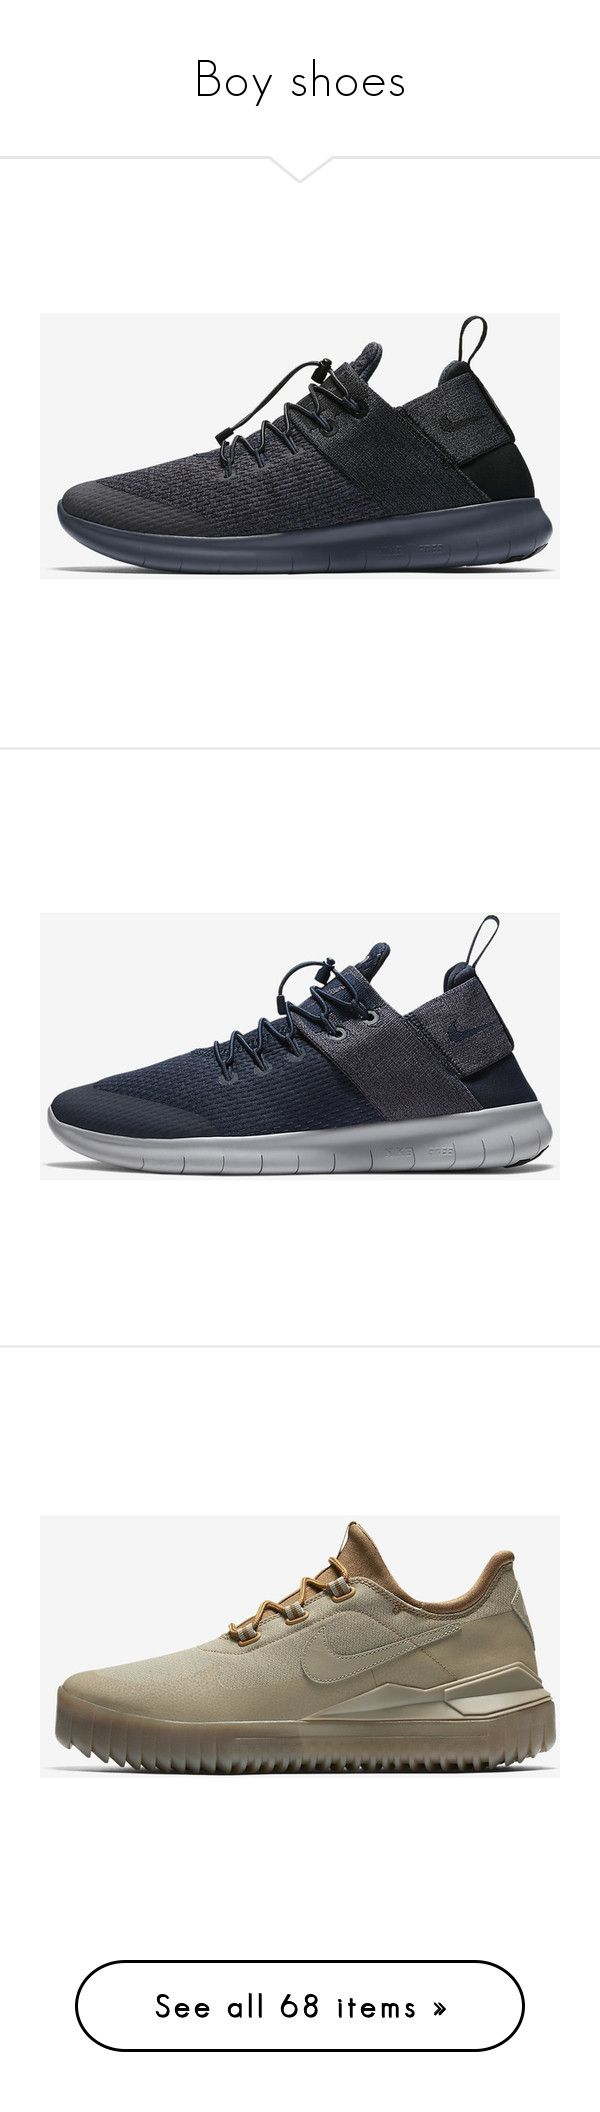 """""""Boy shoes"""" by ariana-bens ❤ liked on Polyvore featuring men's fashion, men's shoes, men's sneakers, black, mens black lace up shoes, mens rubber sole shoes, mens black slip on shoes, mens slip on sneakers, mens black shoes and grey"""